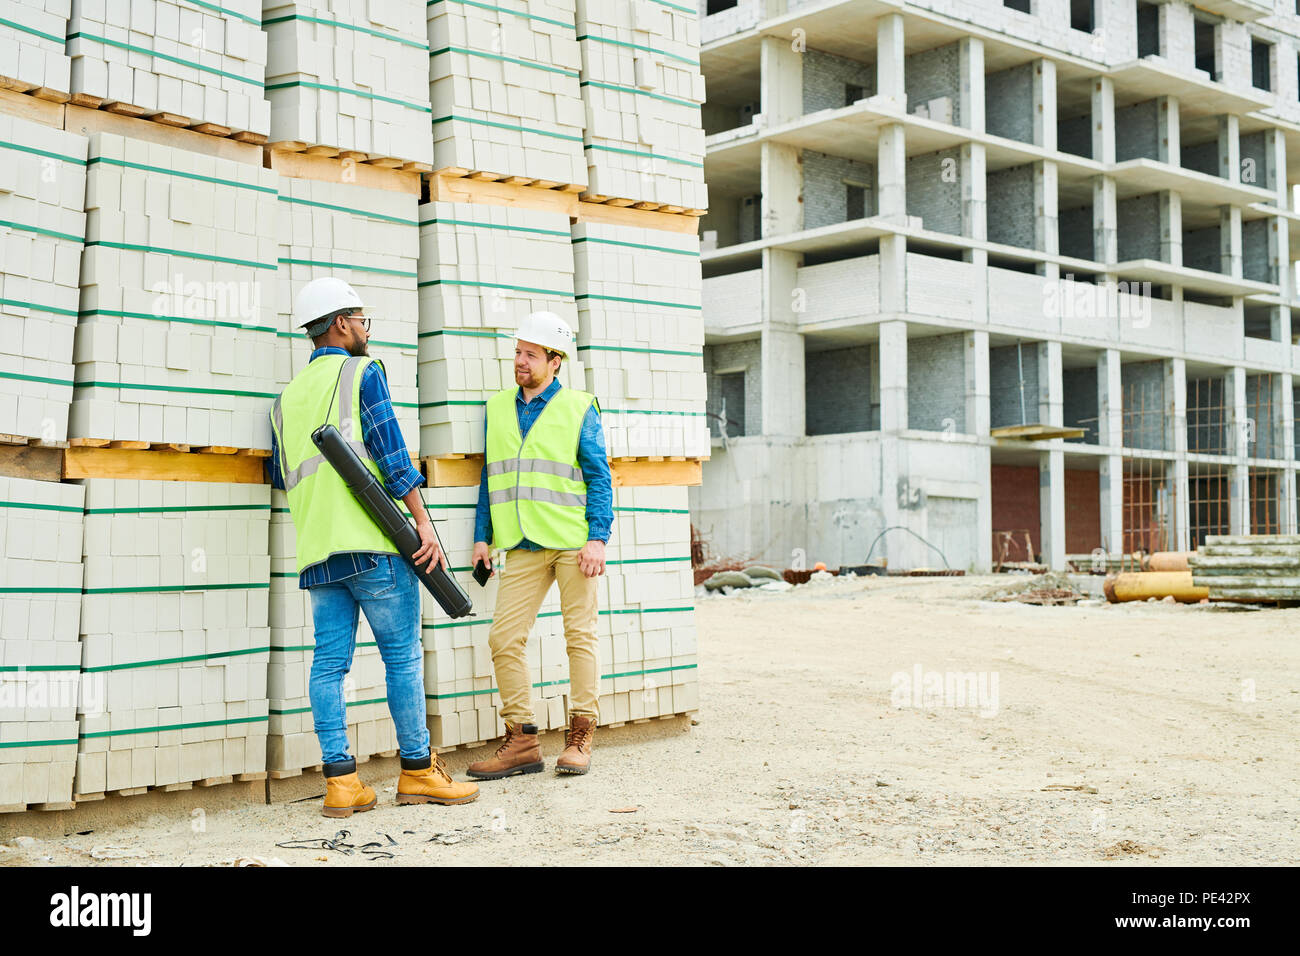 Construction engineers speaking near materials - Stock Image